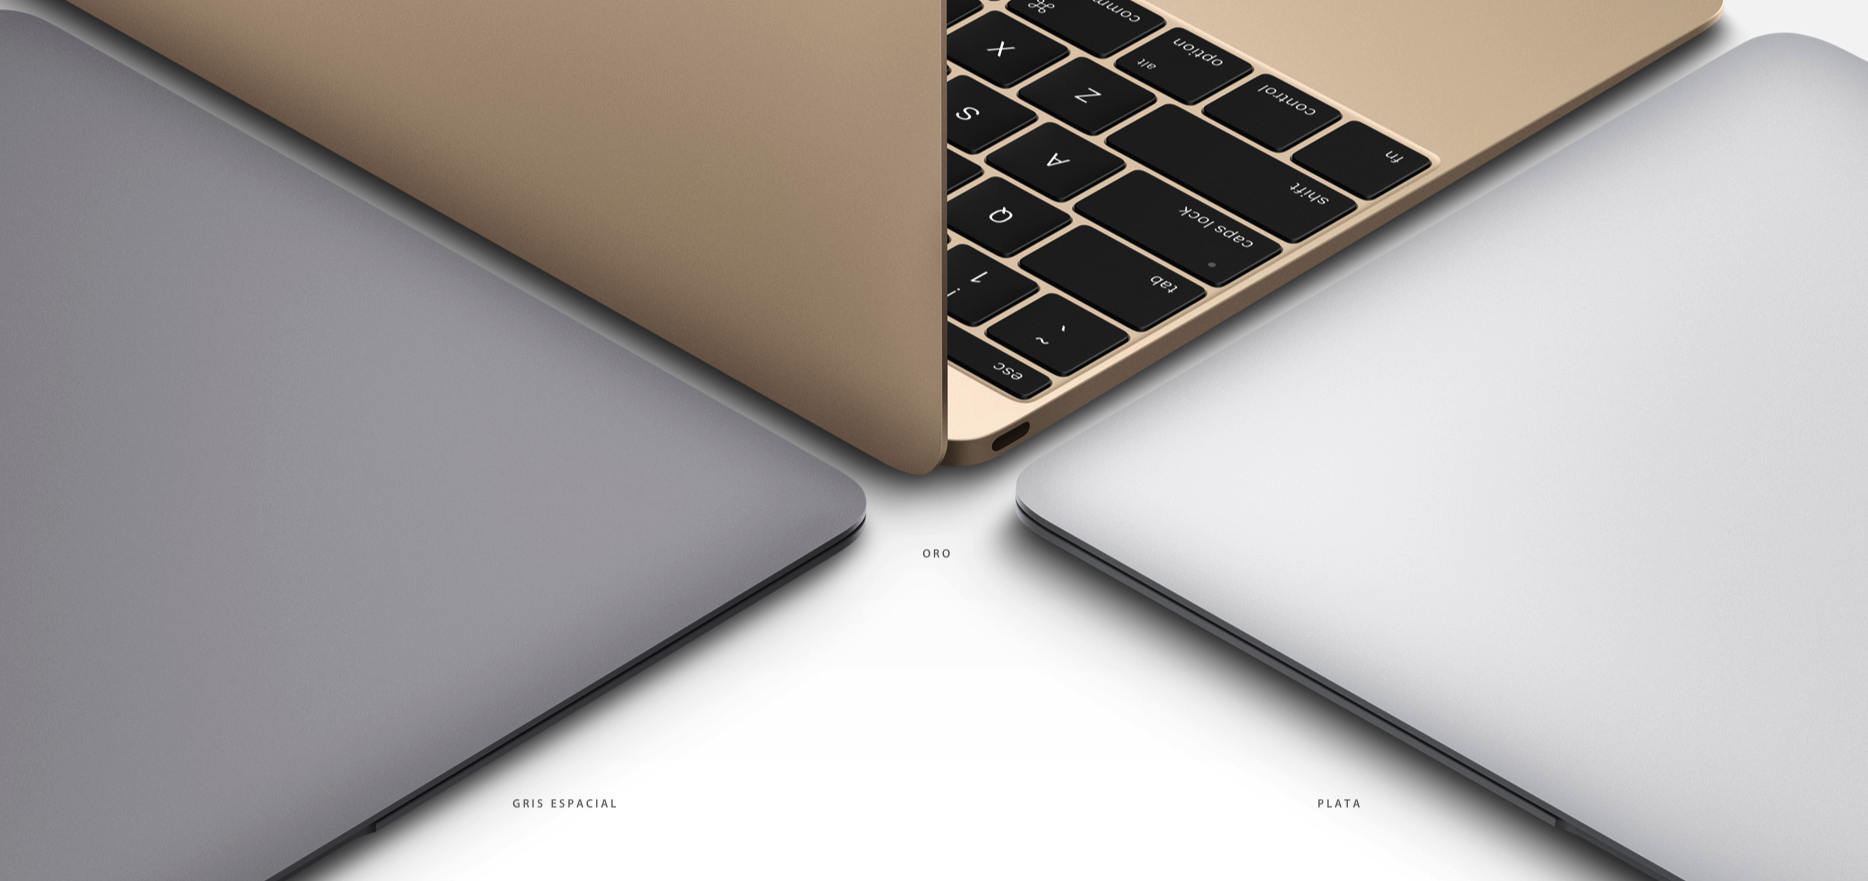 Nuevo MacBook disponible en 3 colores